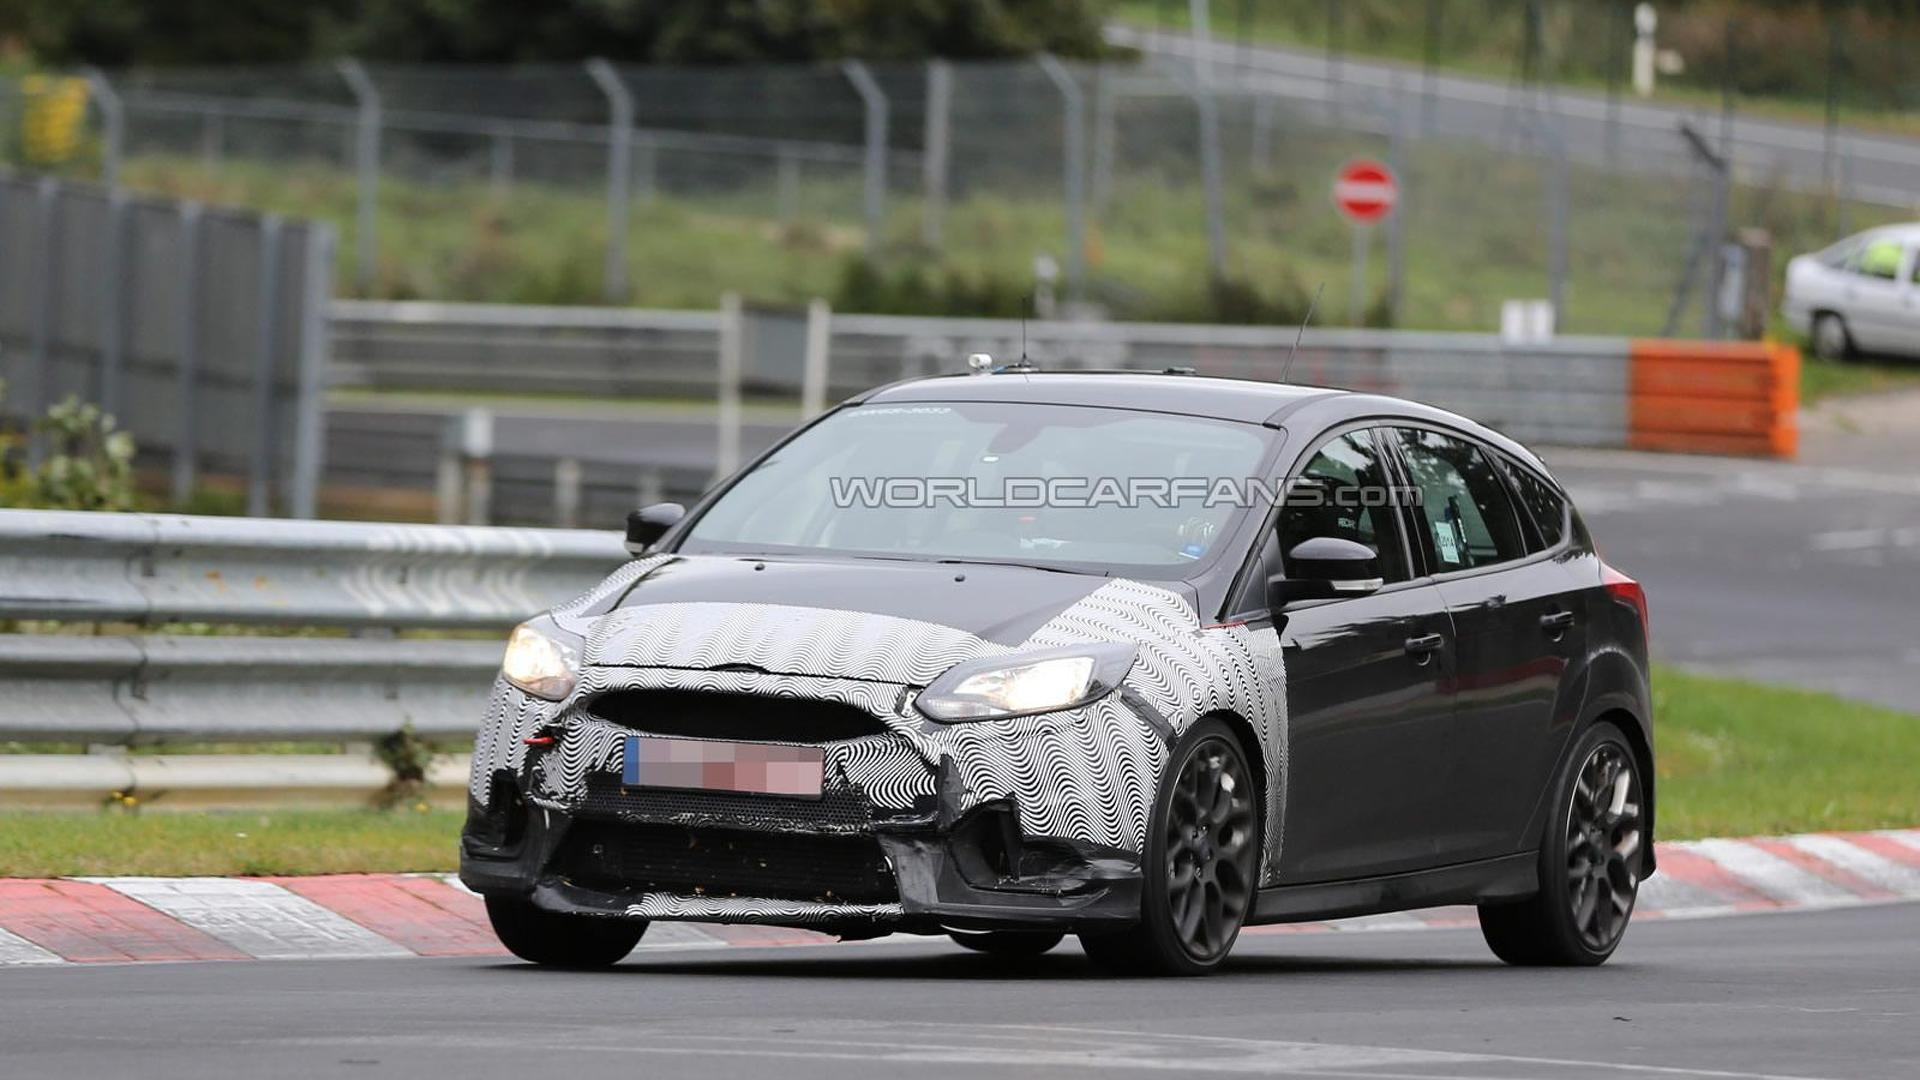 Ford Focus RS confirmed, will be one of 12+ new performance models